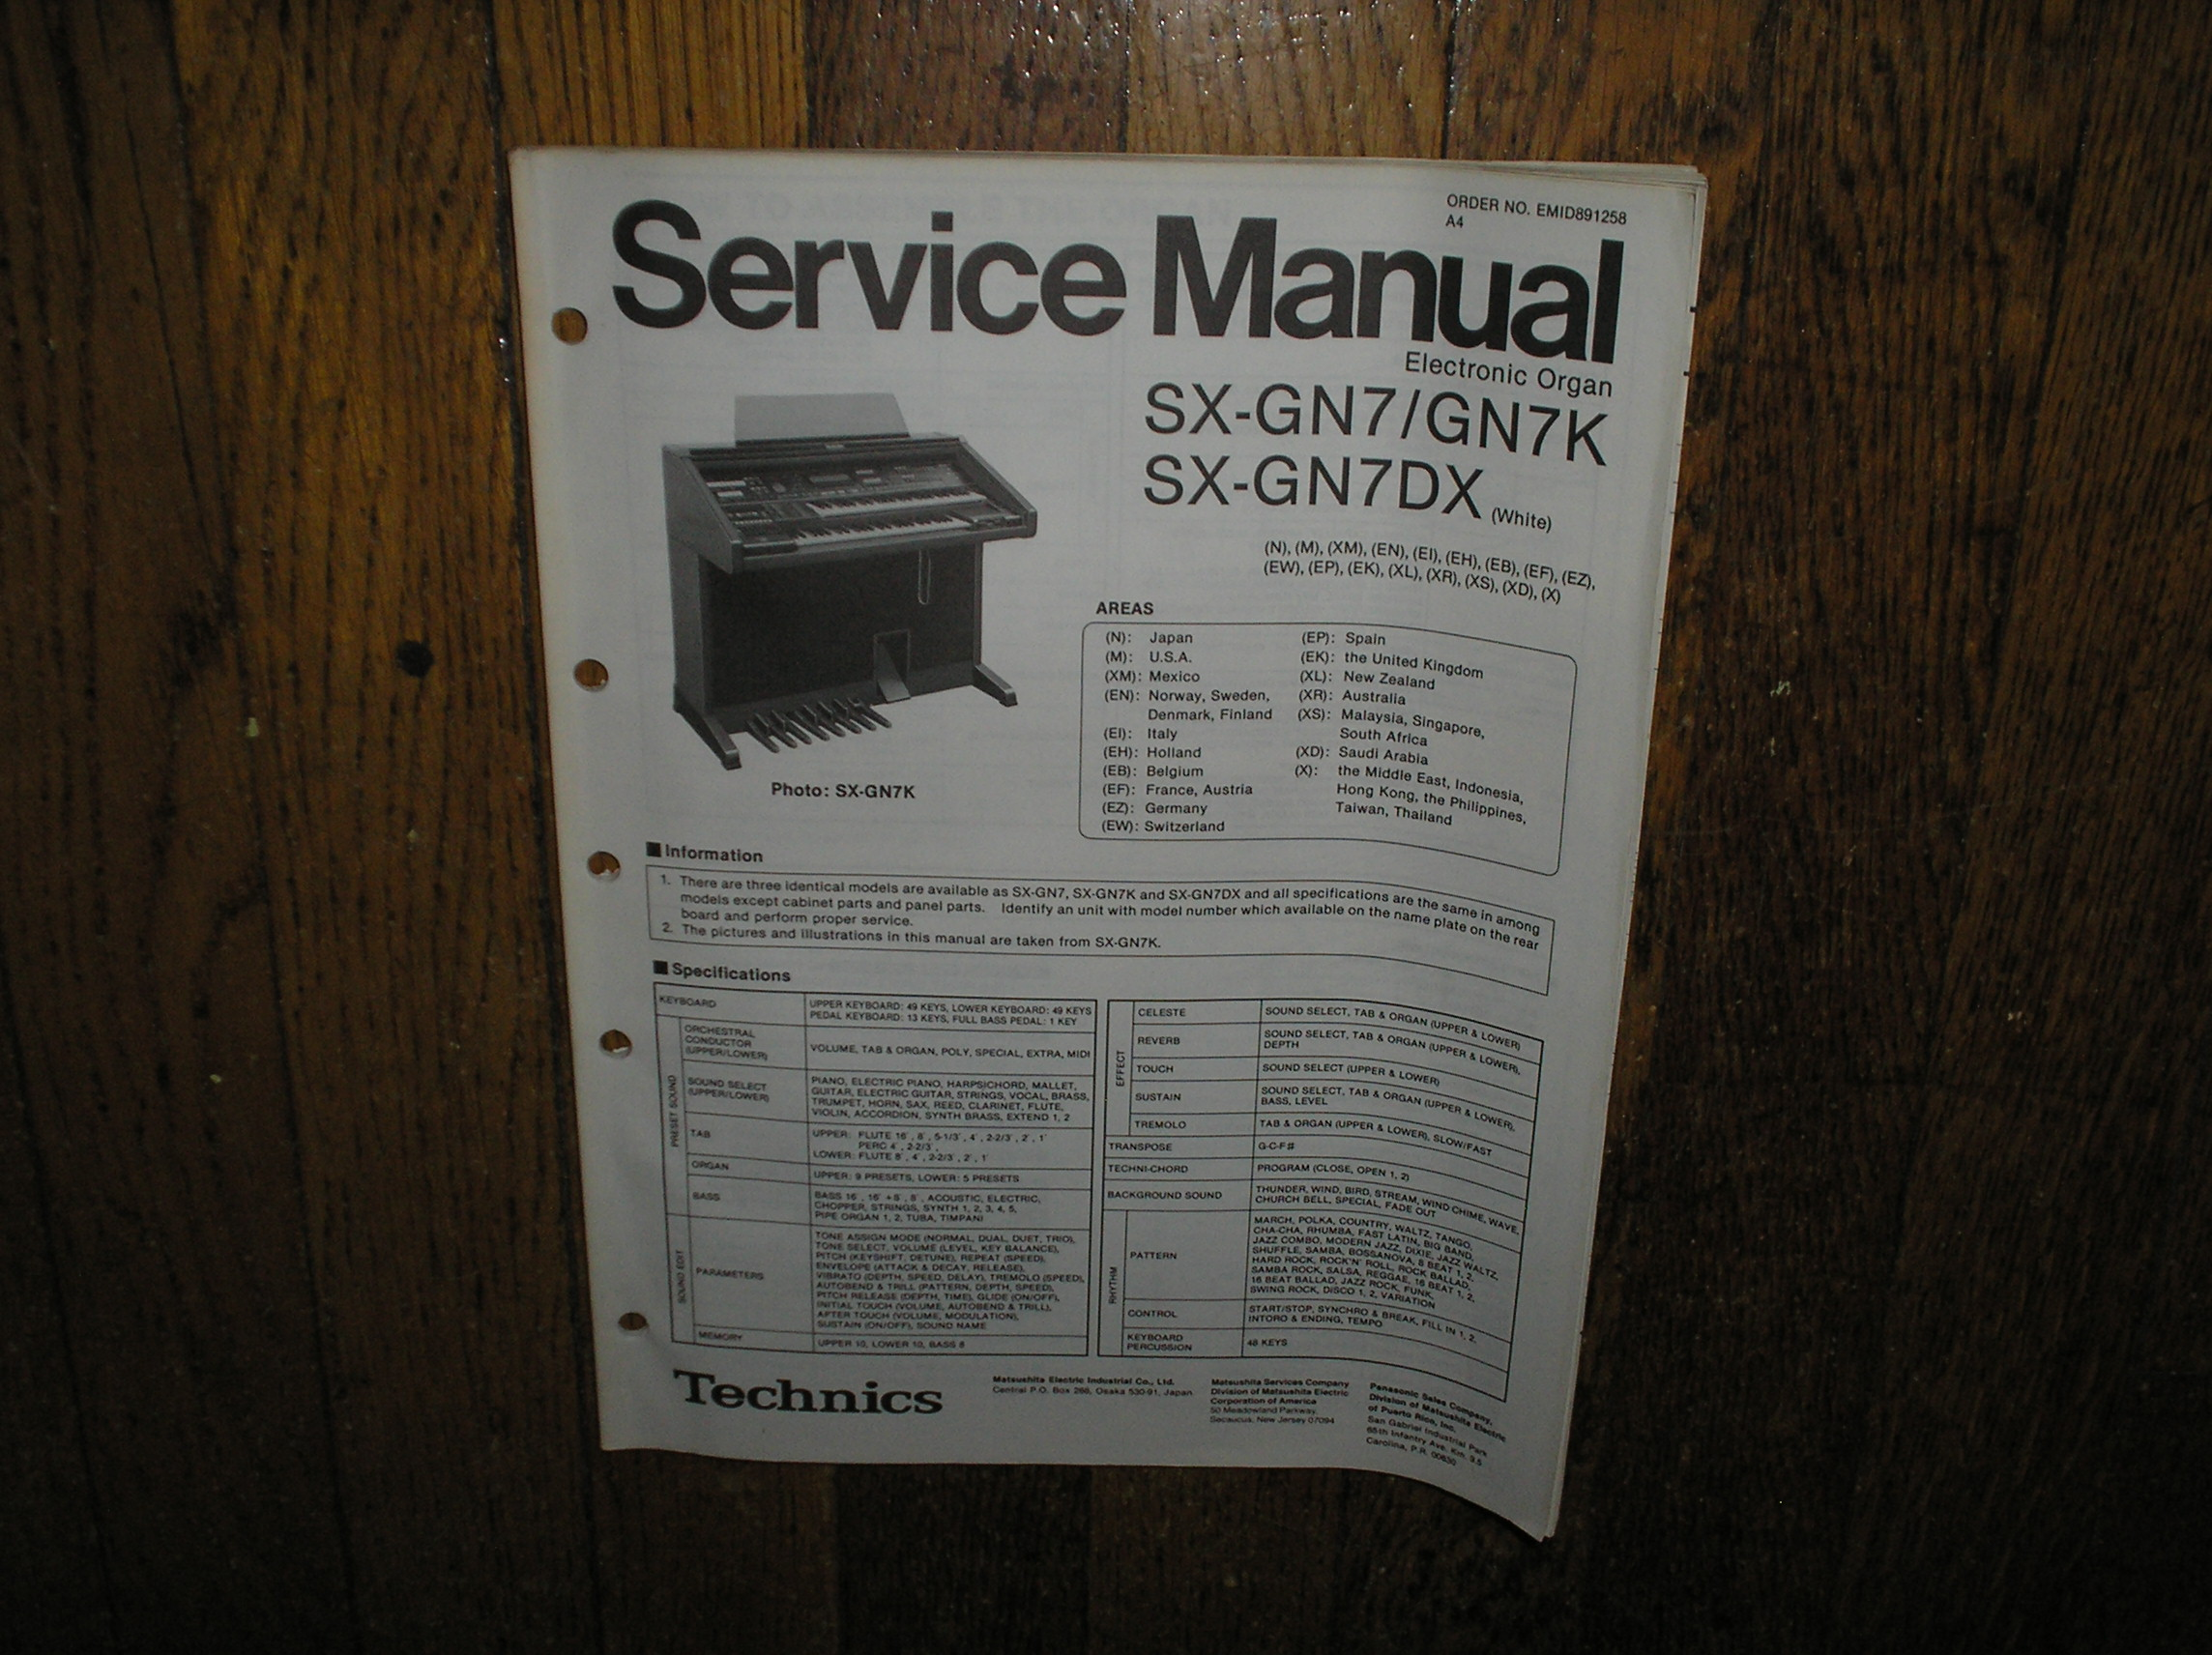 SX-GN7 SX-GN7K SX-GN7DX Electric Organ Service Manual